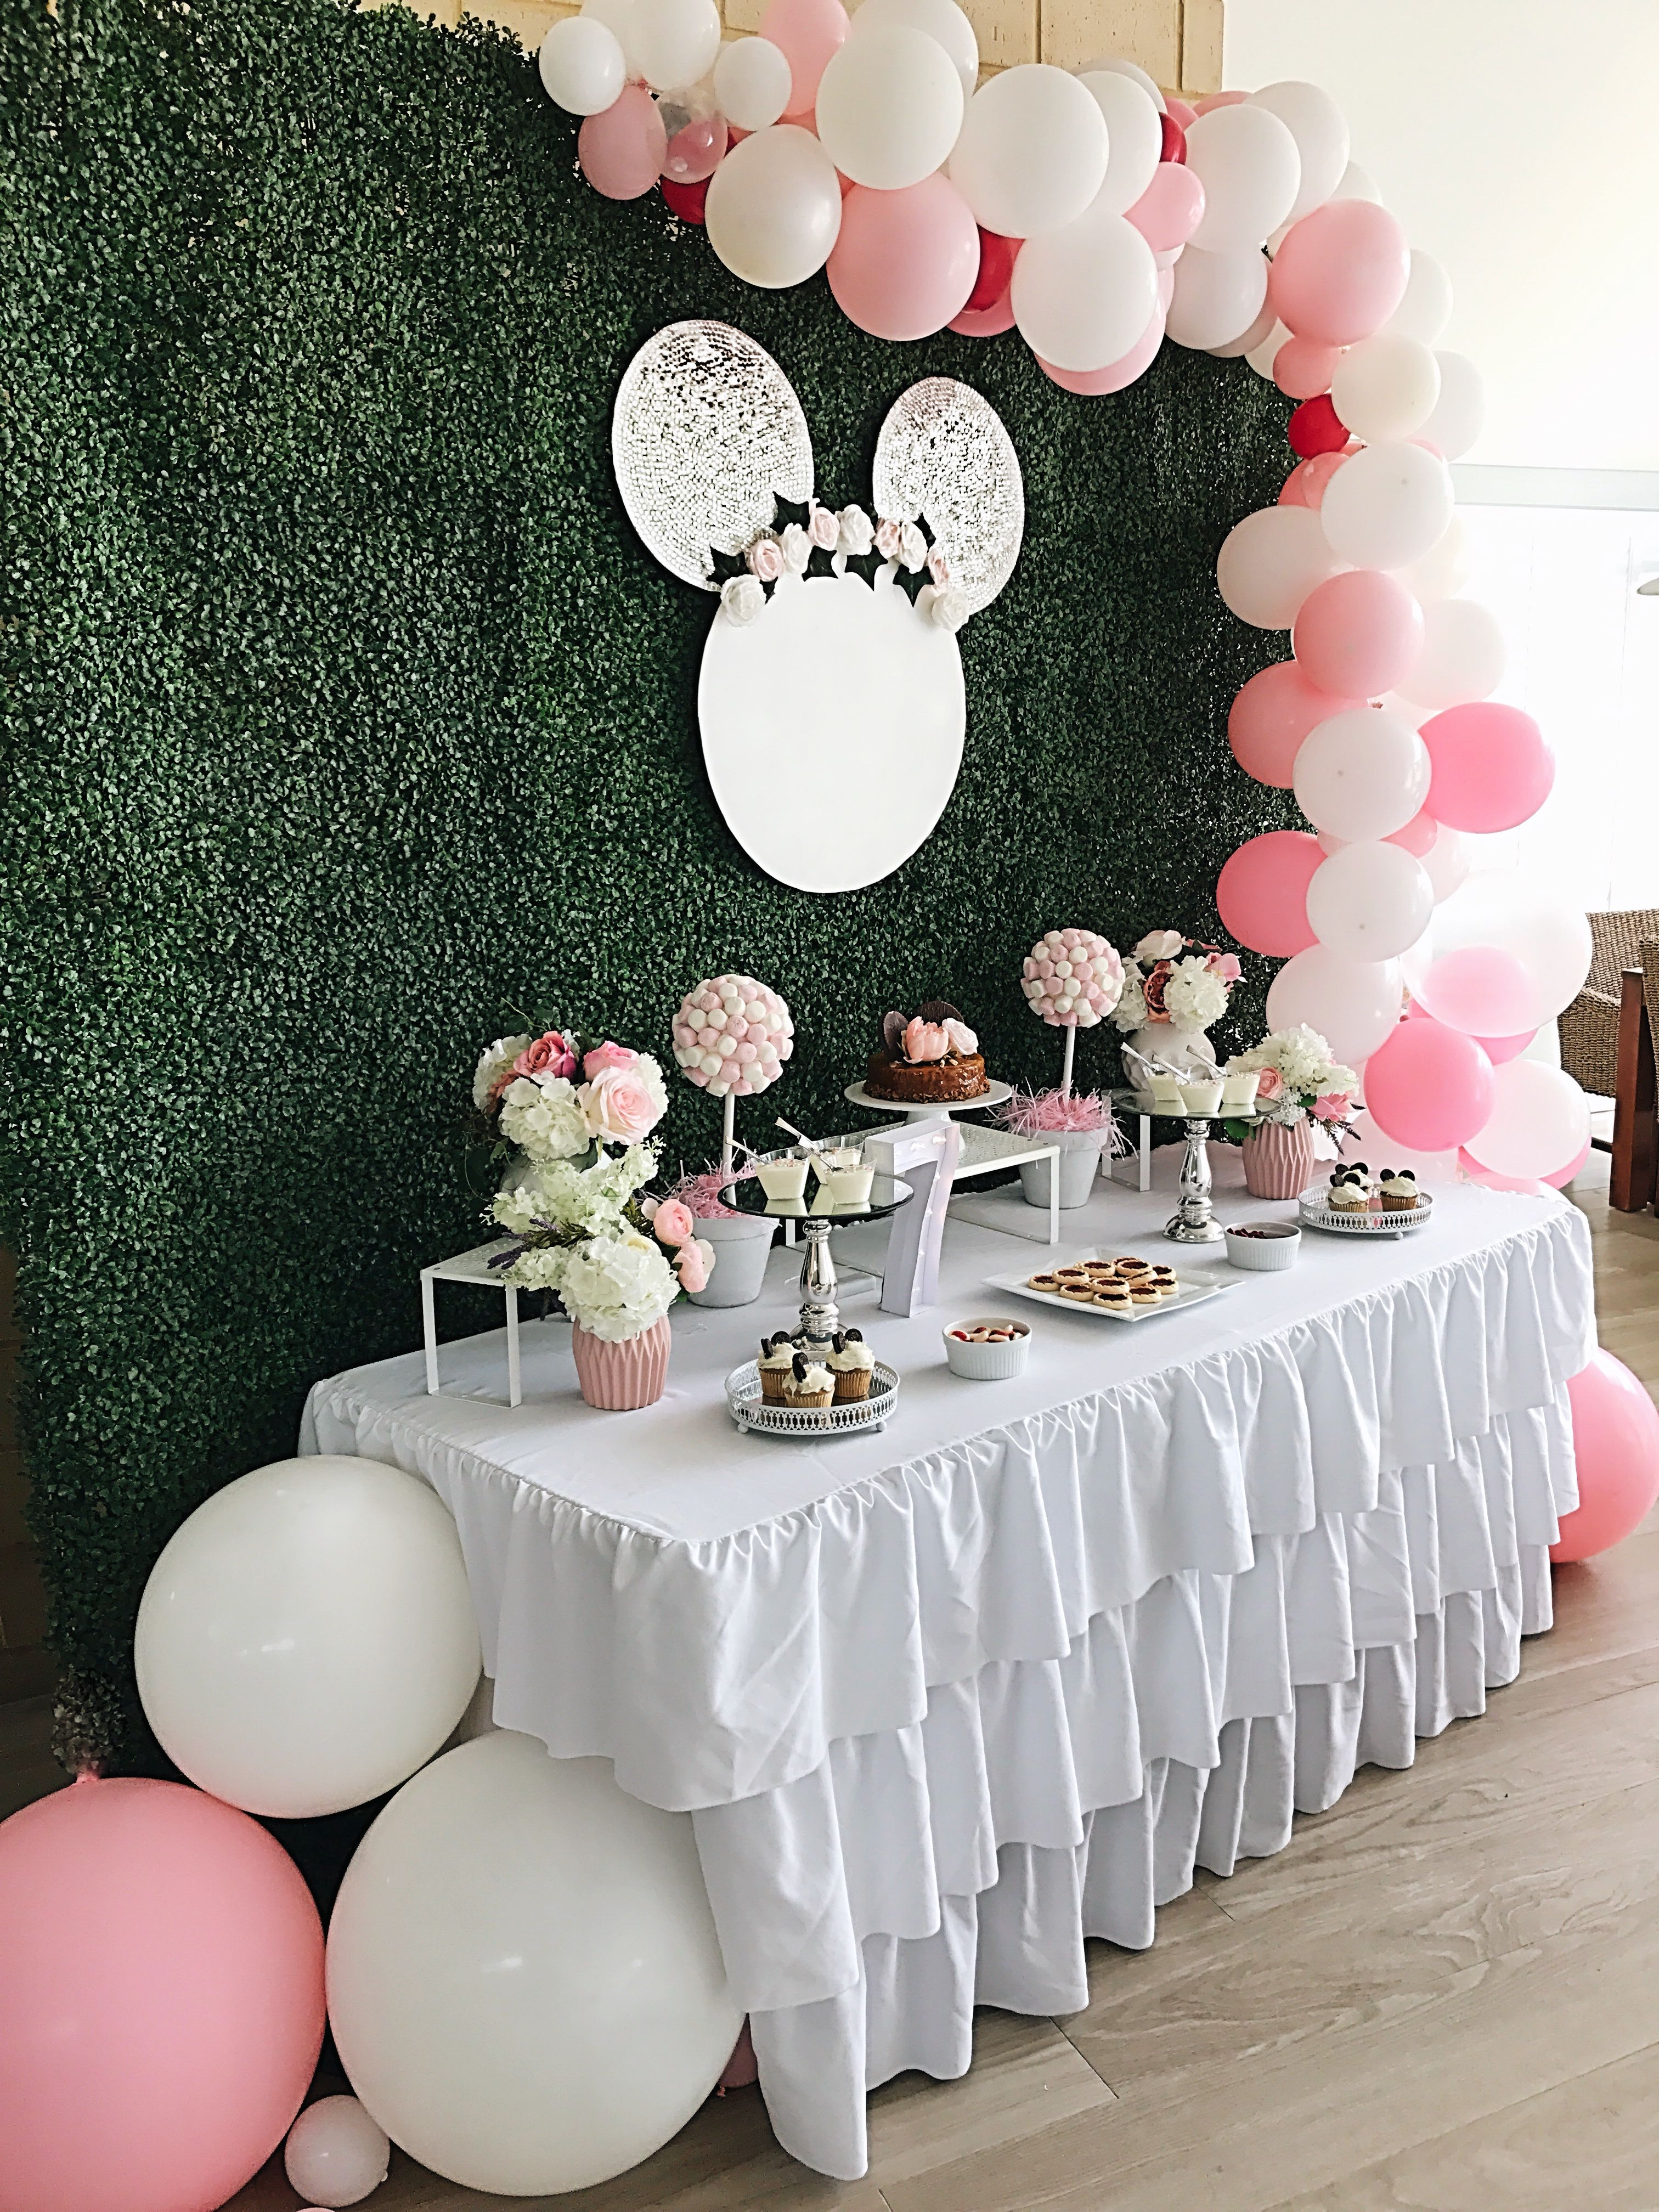 Minnie Mouse Party Backdrop Stylish Soirees In Perth Minnie